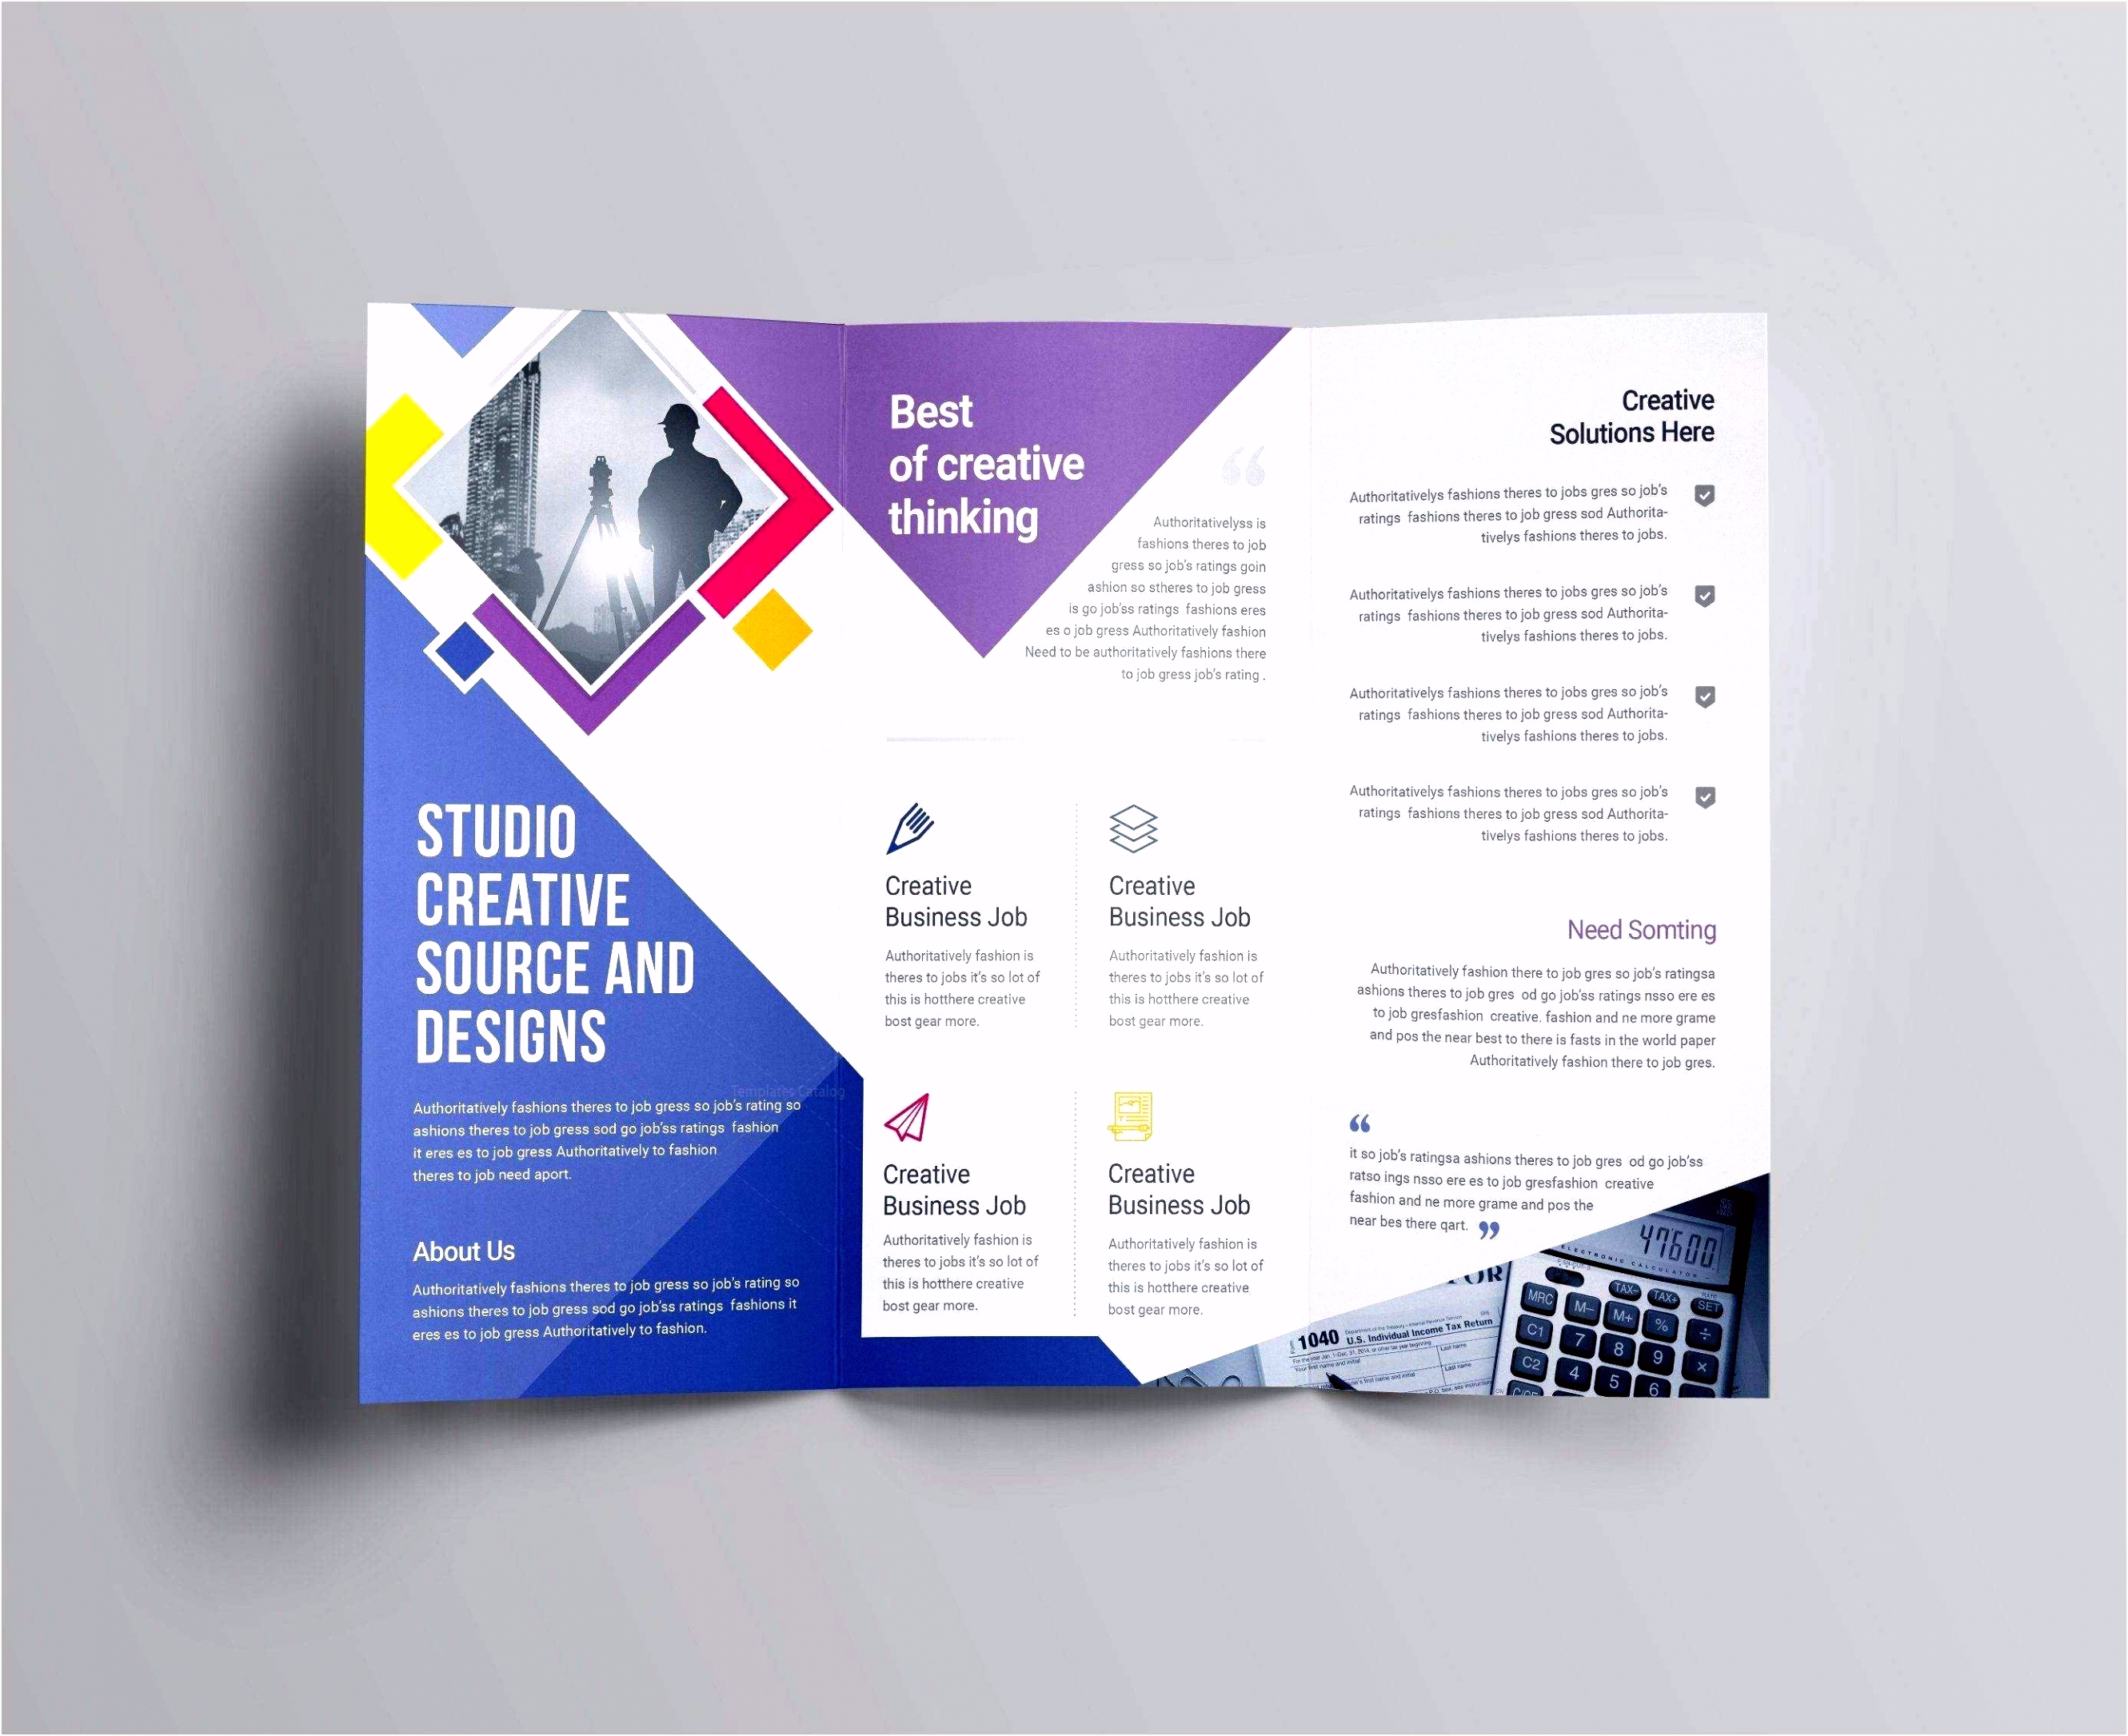 Business Card Template shop Psd Valid 29 Best Free Shop Poster